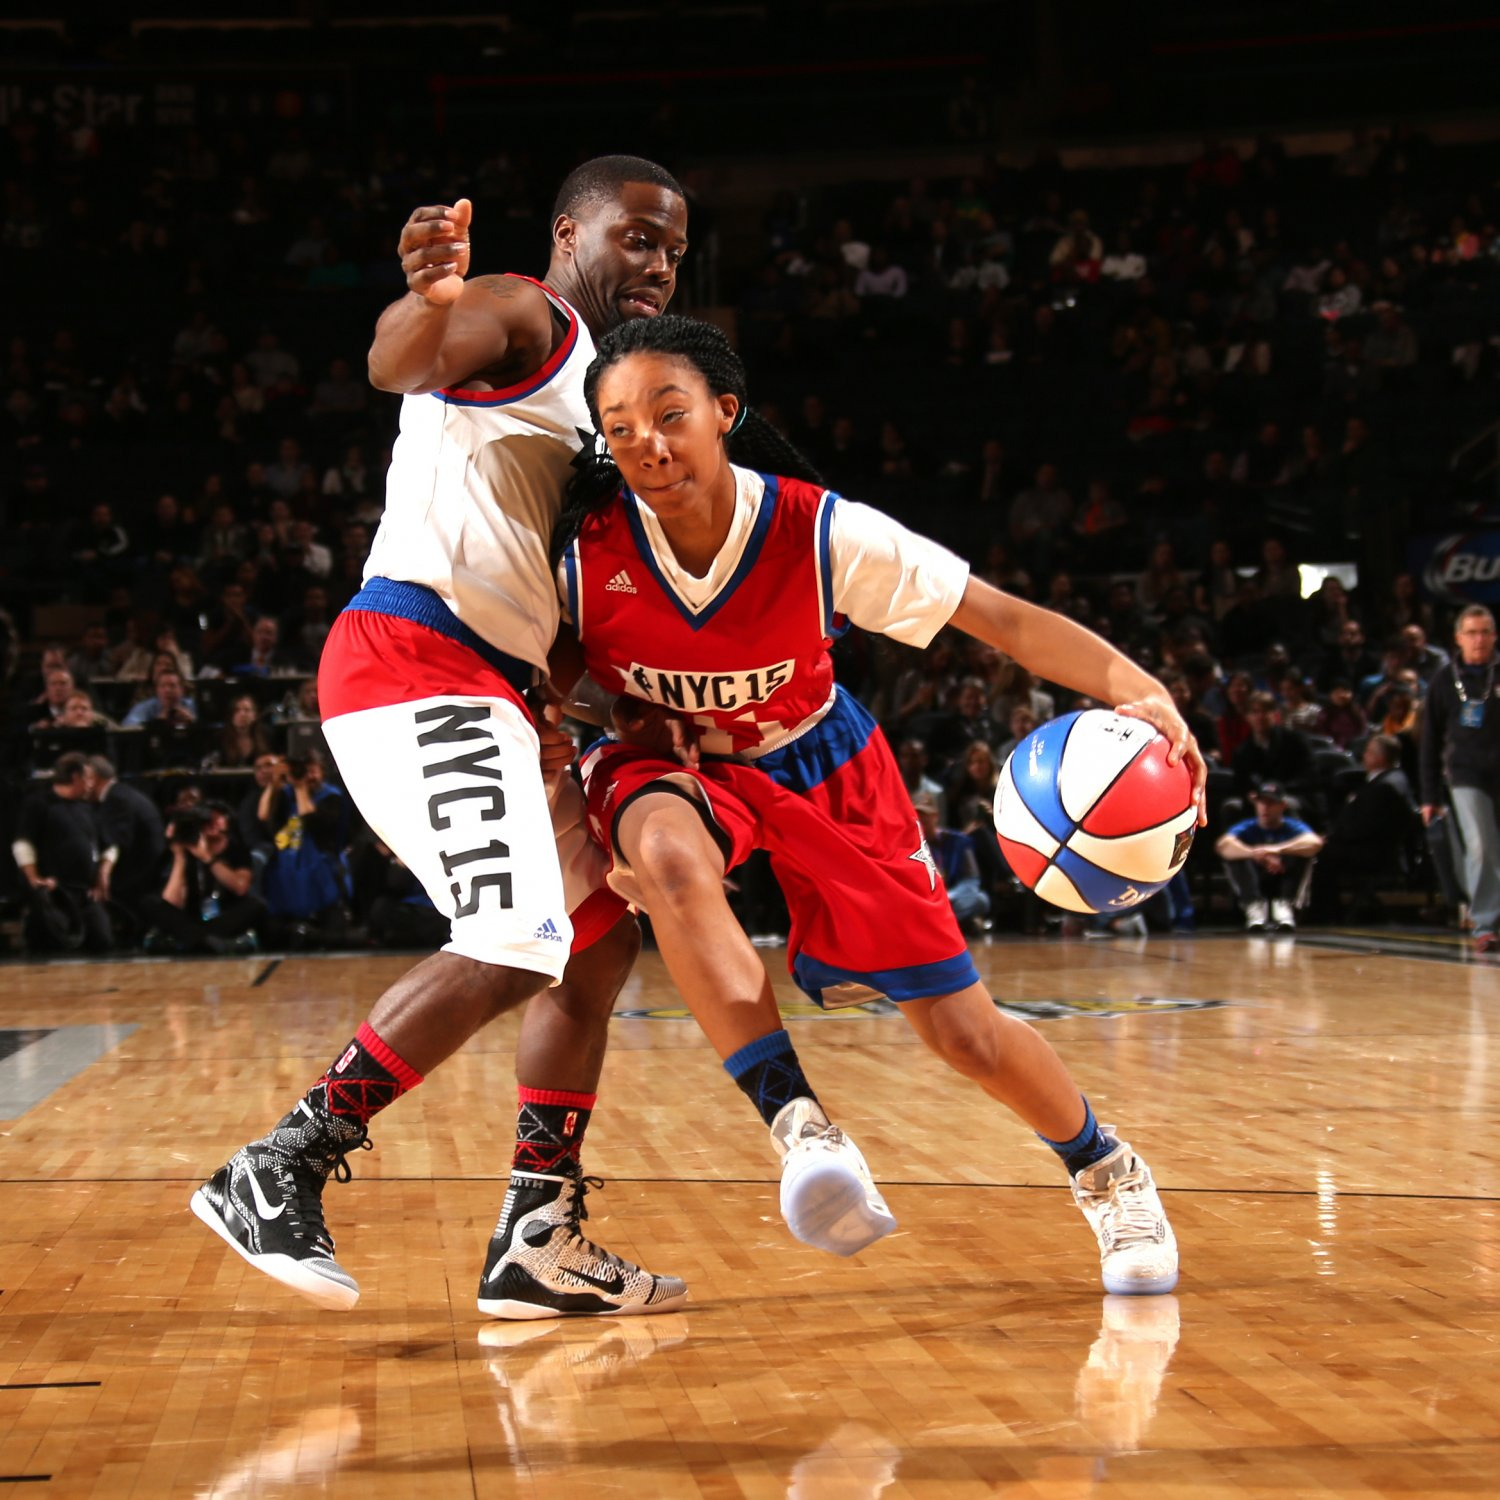 13-year-old Mo'ne Davis schools Kevin Hart at NBA All-Star ...